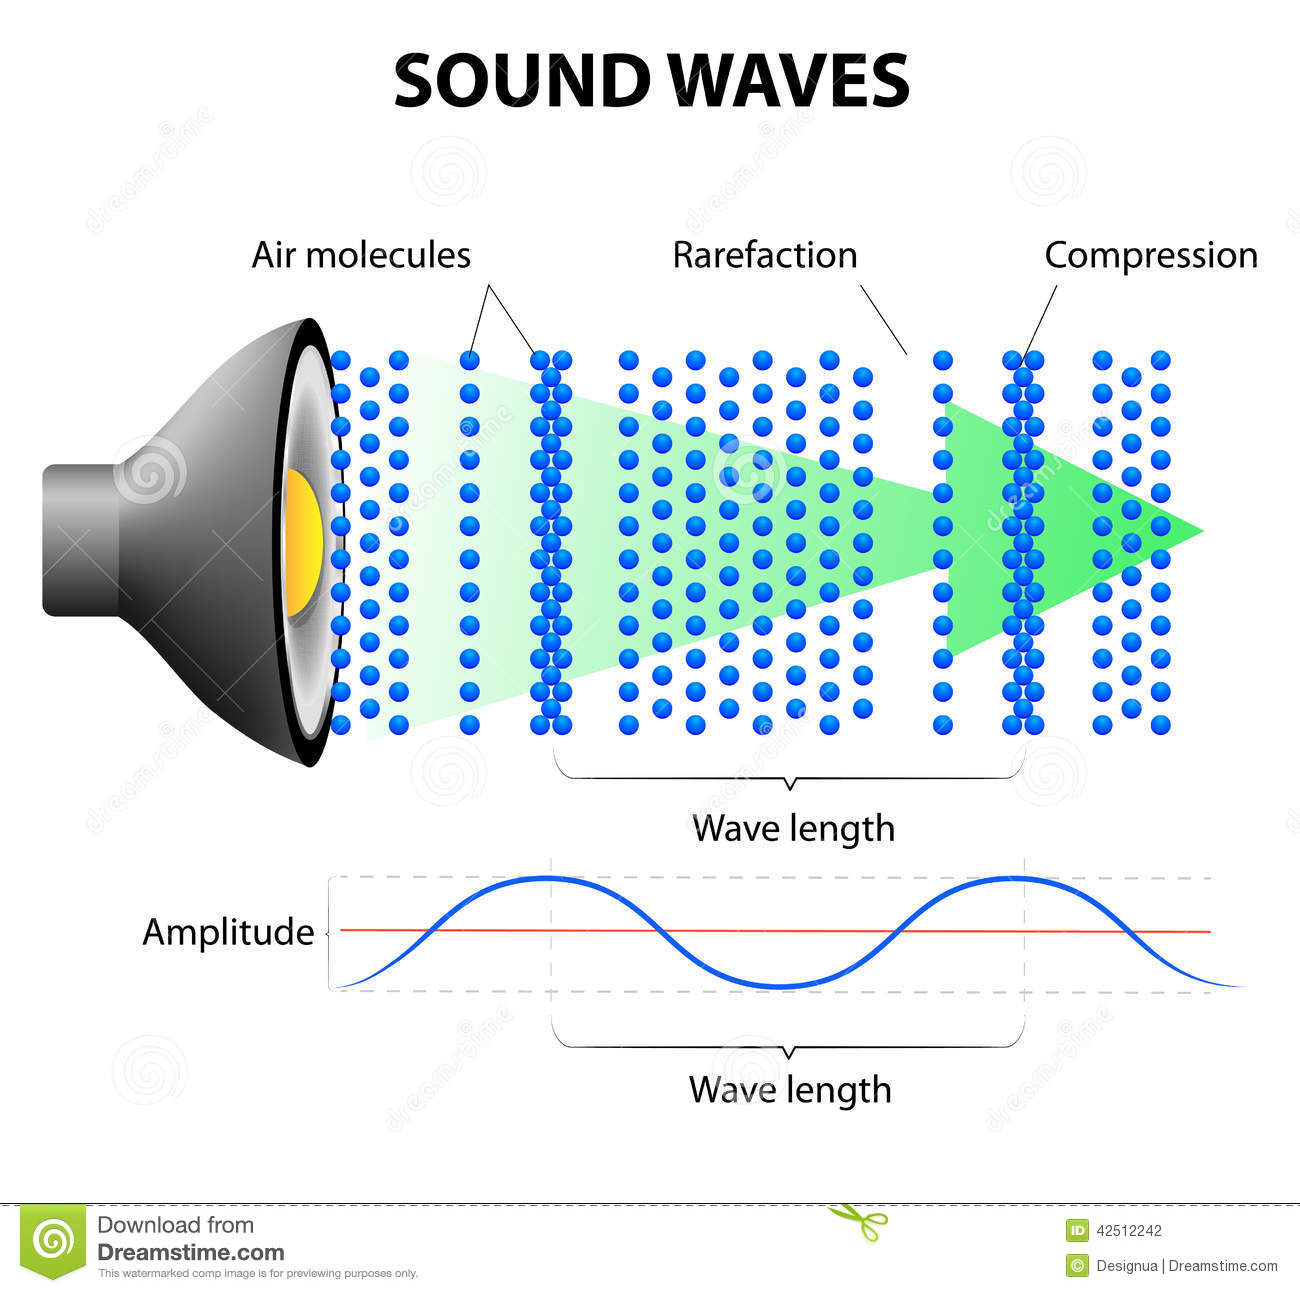 sounds and waves that surrounds us all the time The time it takes for the sound to decrease to 1/1000th of its original pressure (or a decrease in level by 60db) if its time is too long, sounds become muddled because the reflected sounds persist for too long it it's short, music sounds dead and it becomes more difficult to produce high-intensity sounds.